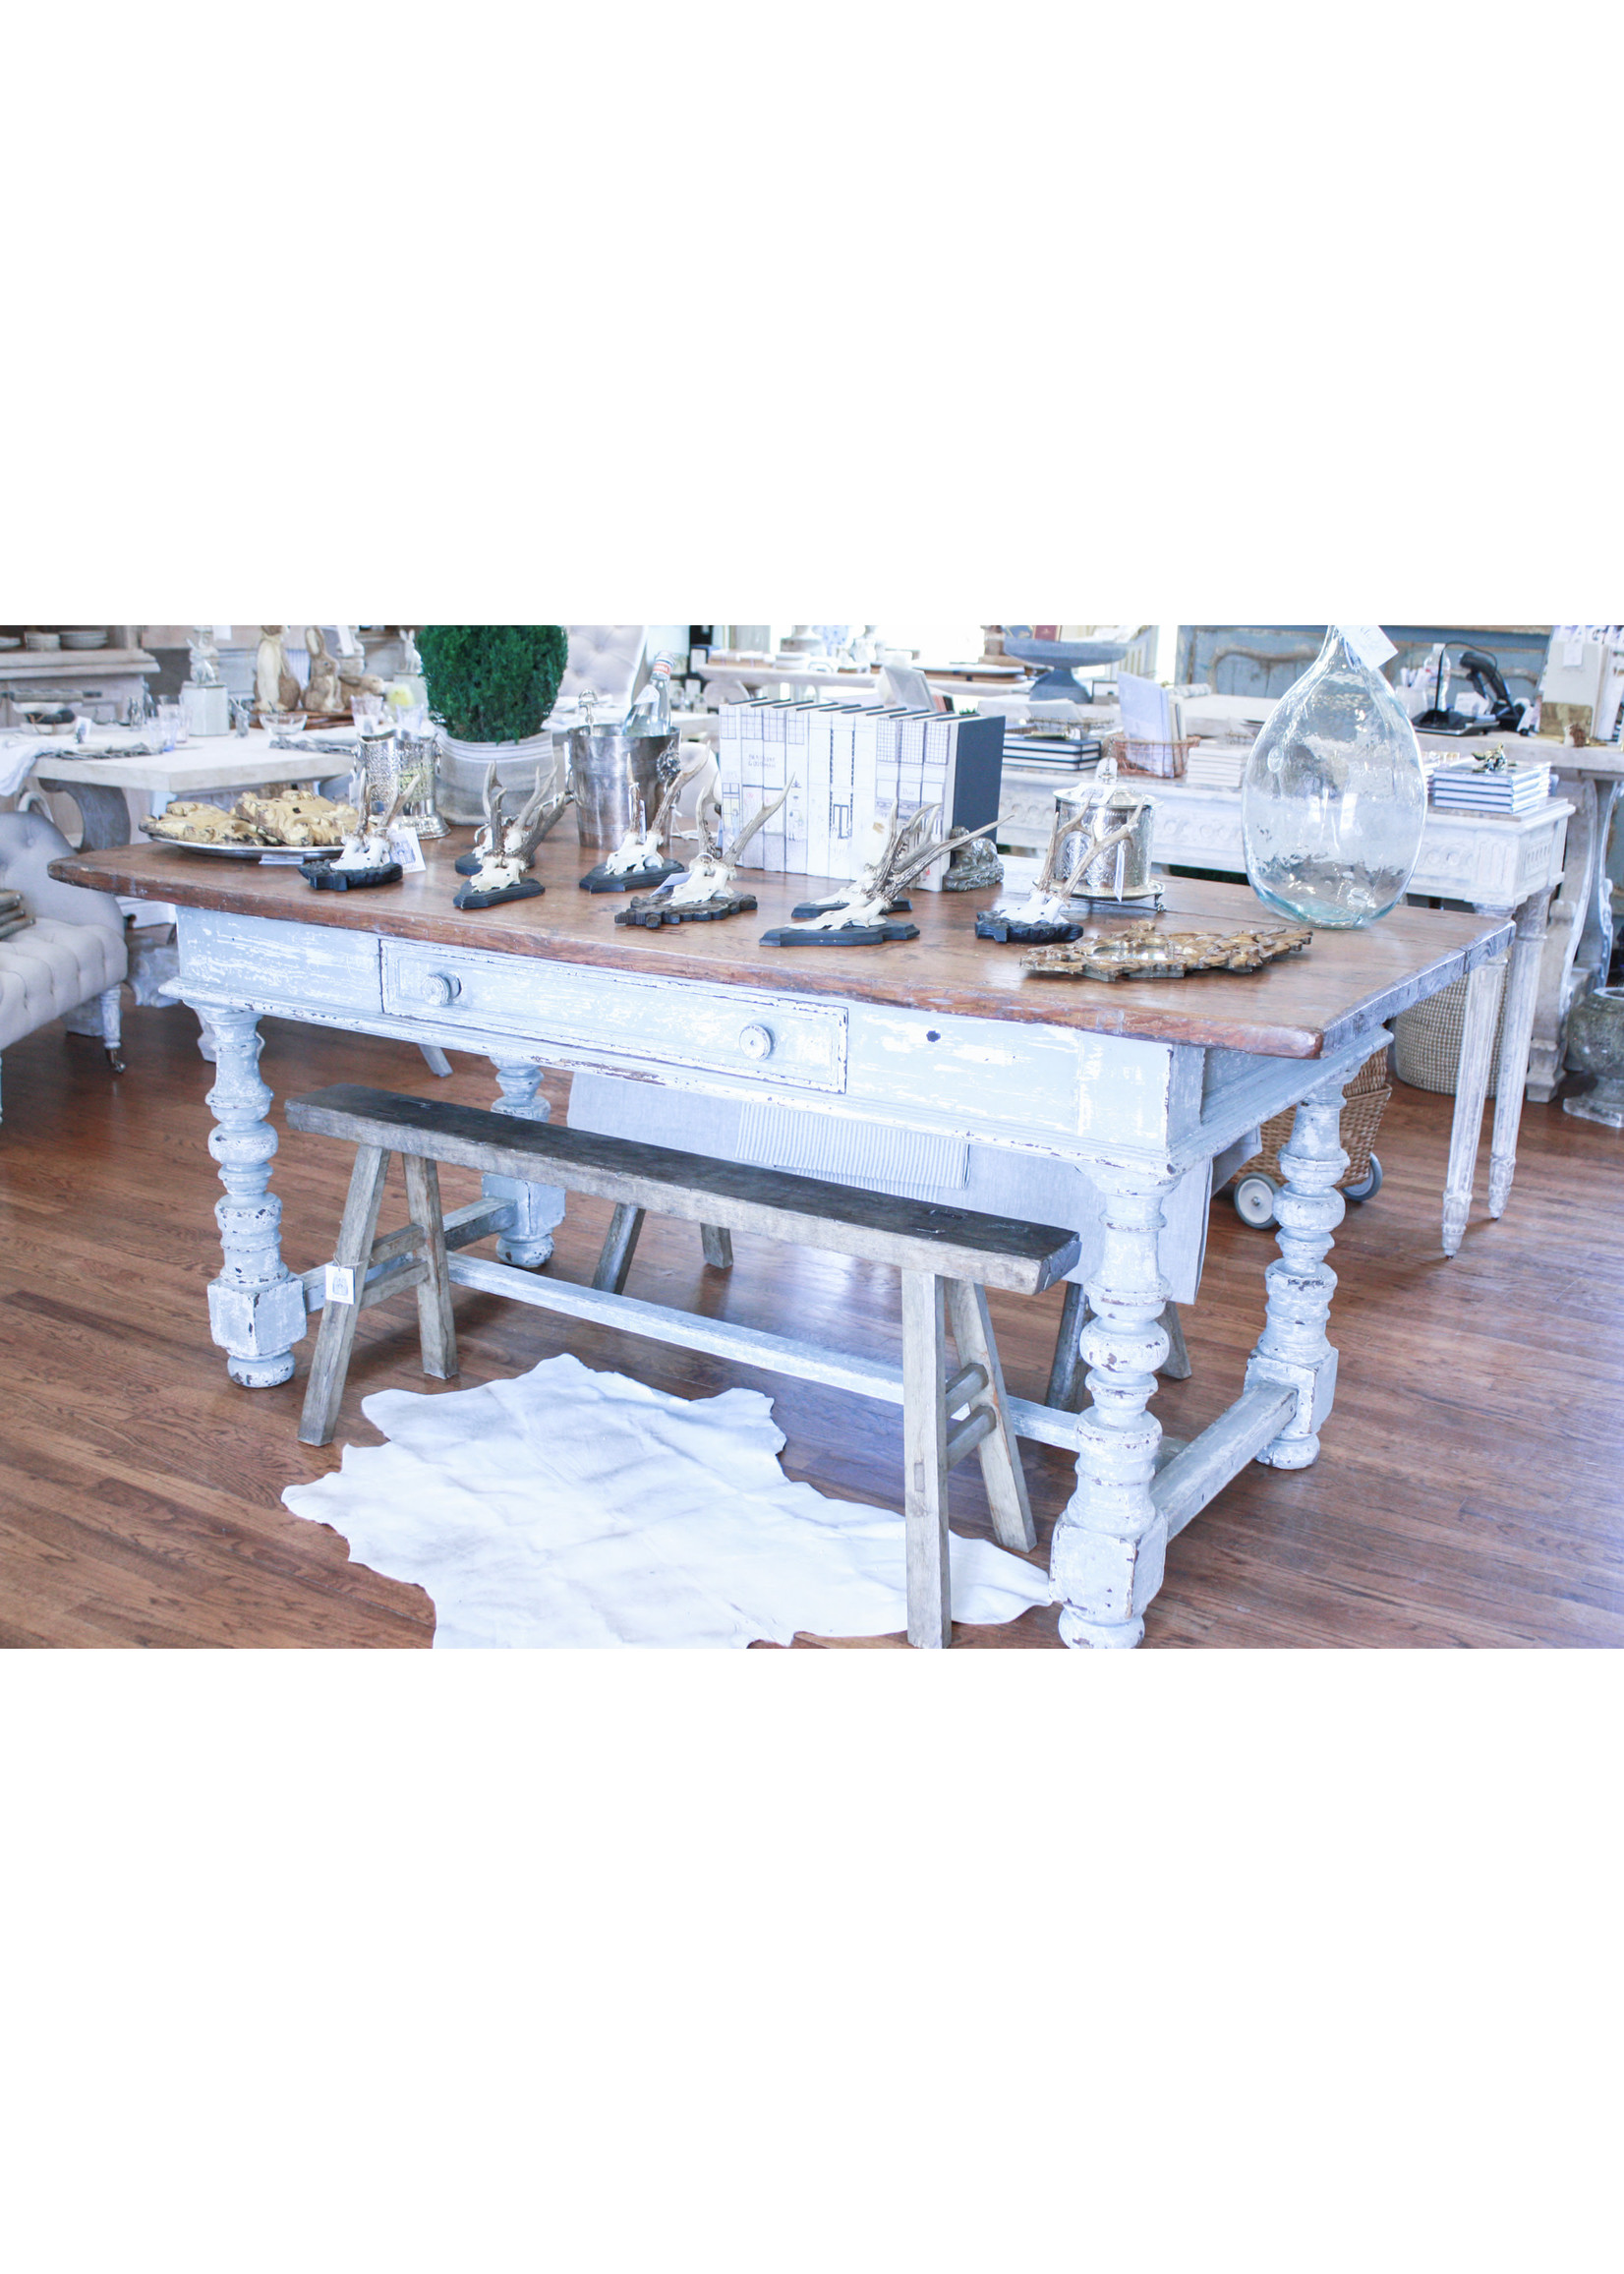 Antique French Farm Table